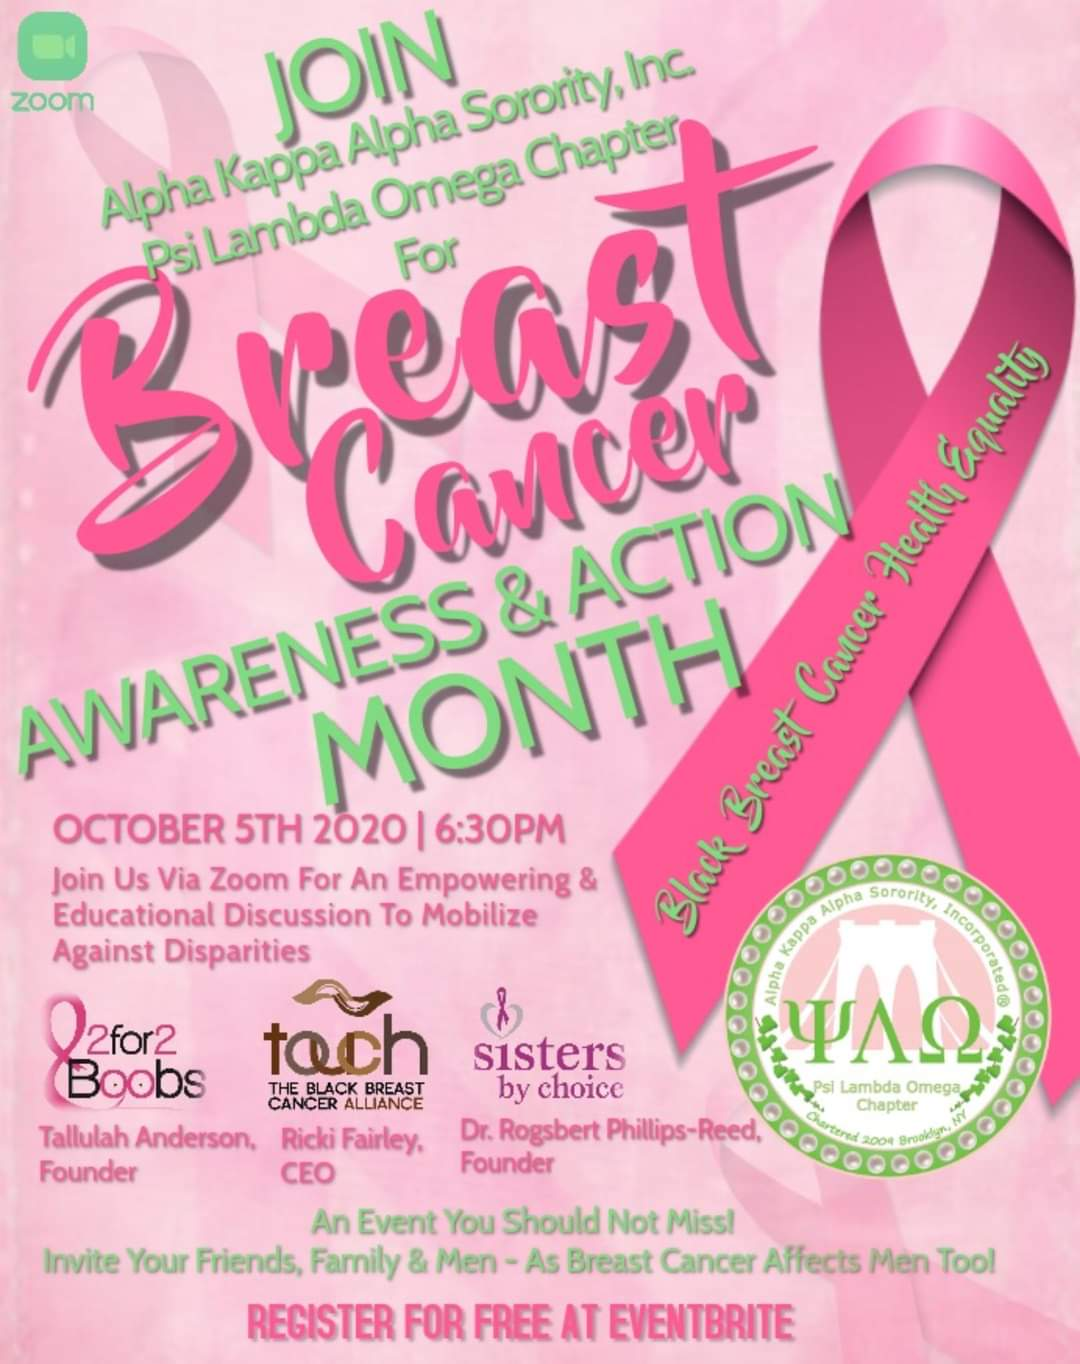 Breast Cancer Impact Day